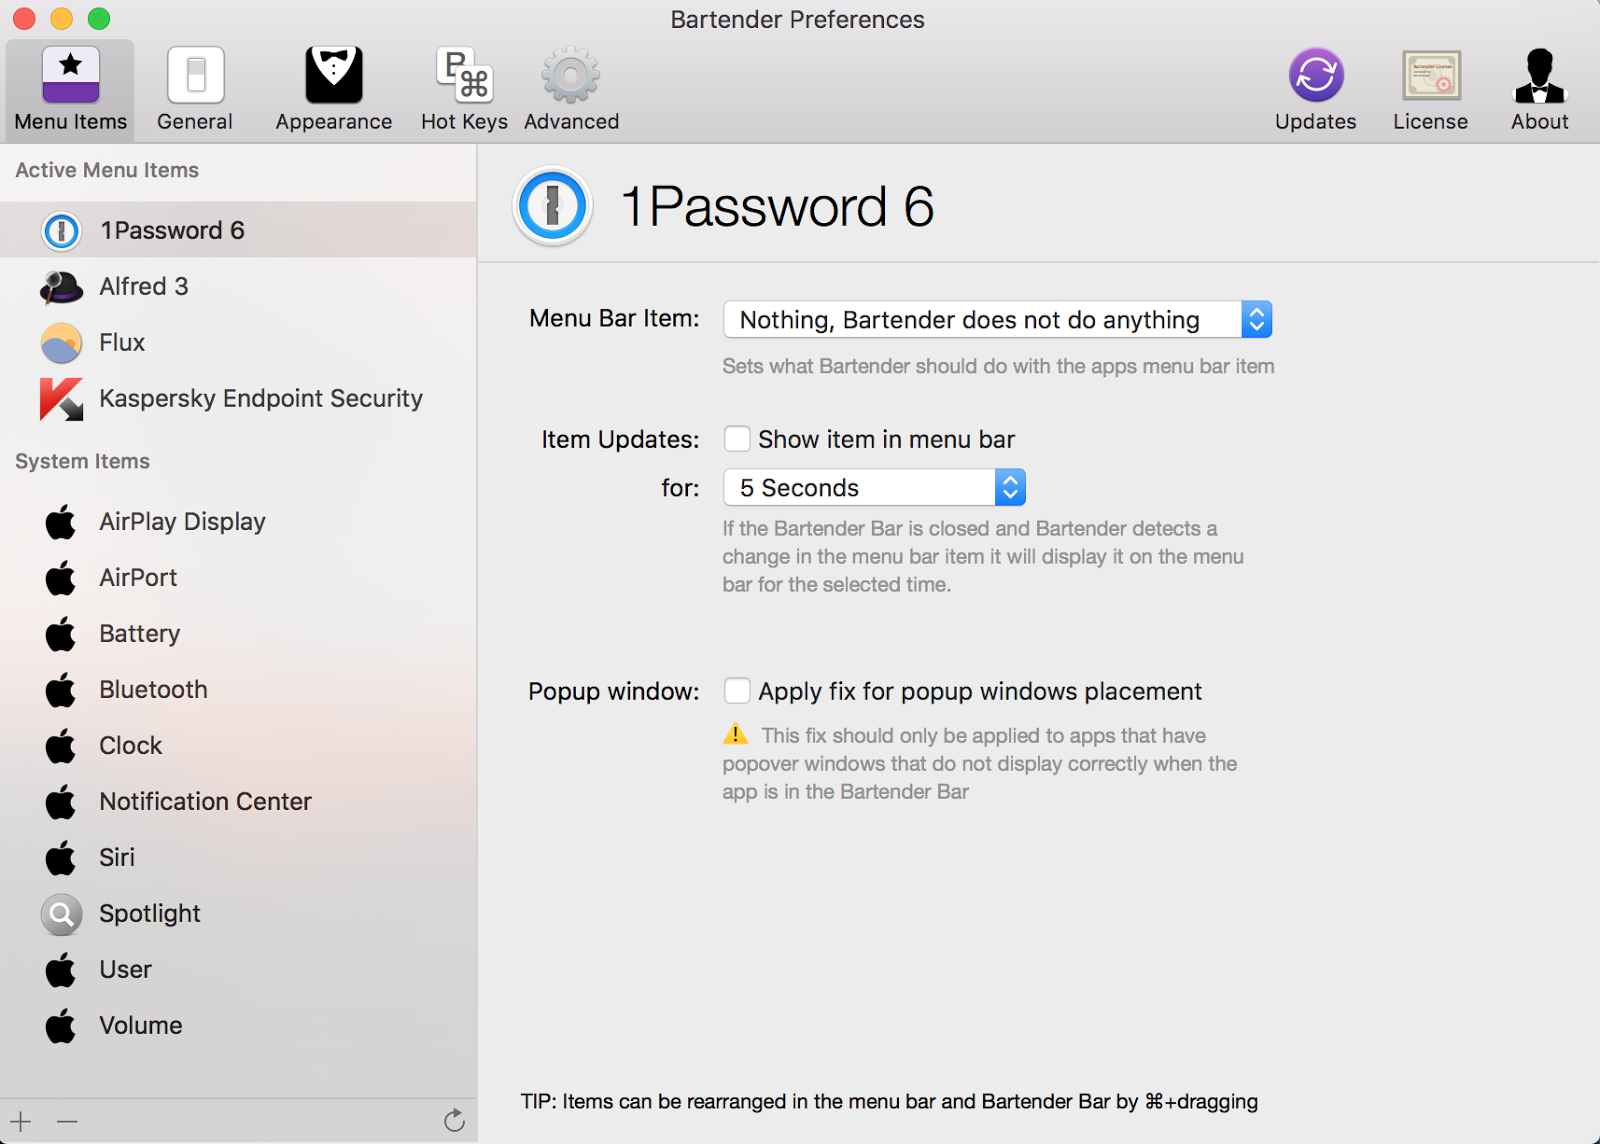 Hacking Bartender mac app and compromising licence check